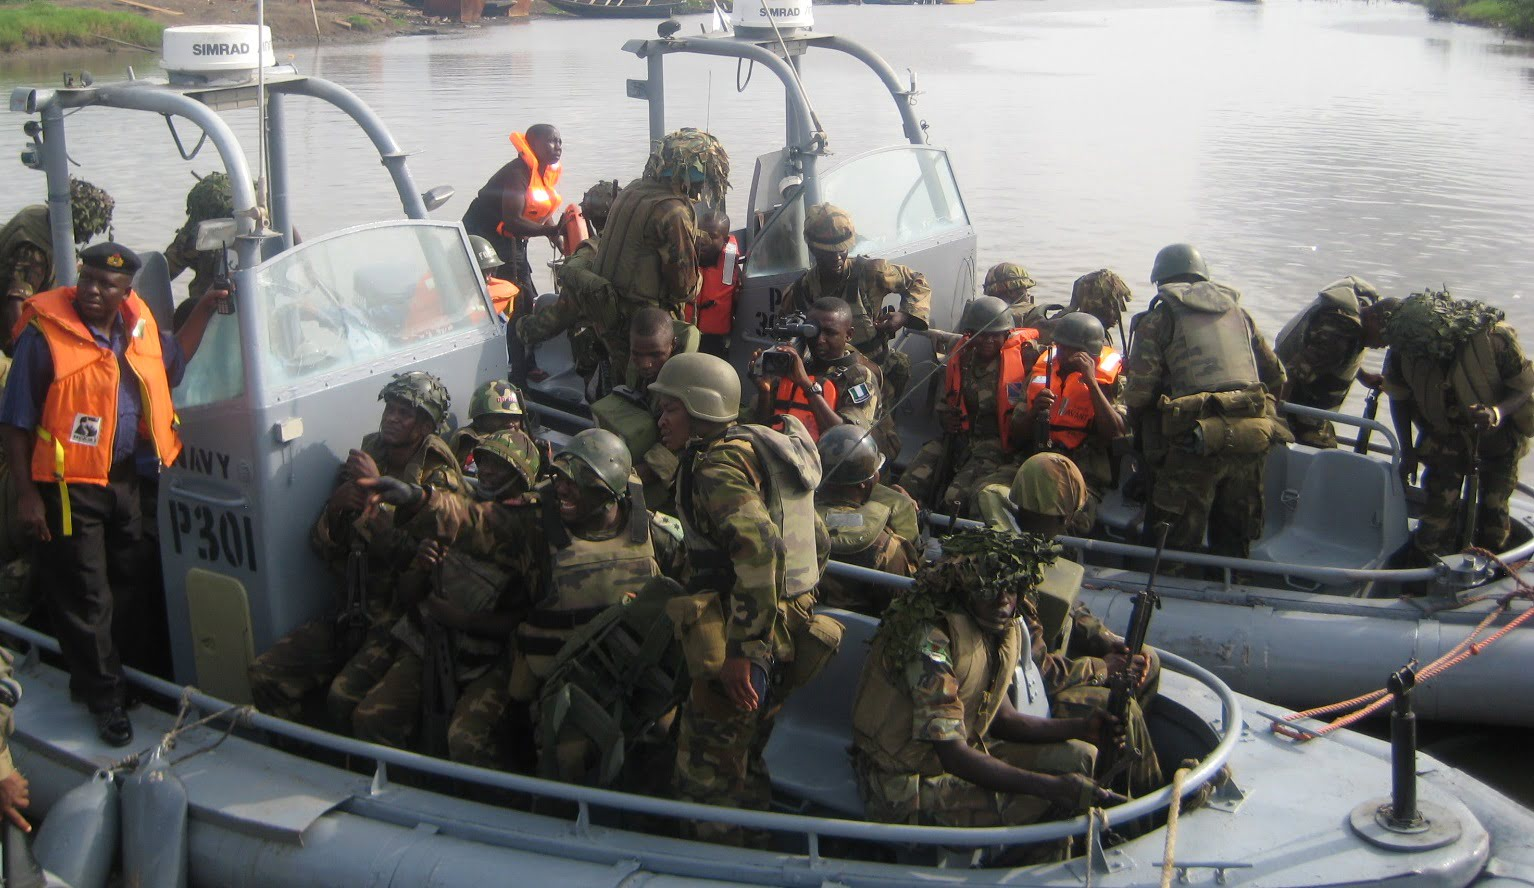 navy Oil bunkering Niger delta1 - Nigerian Navy arrests smugglers, seizes 825 bags of rice in Kwara